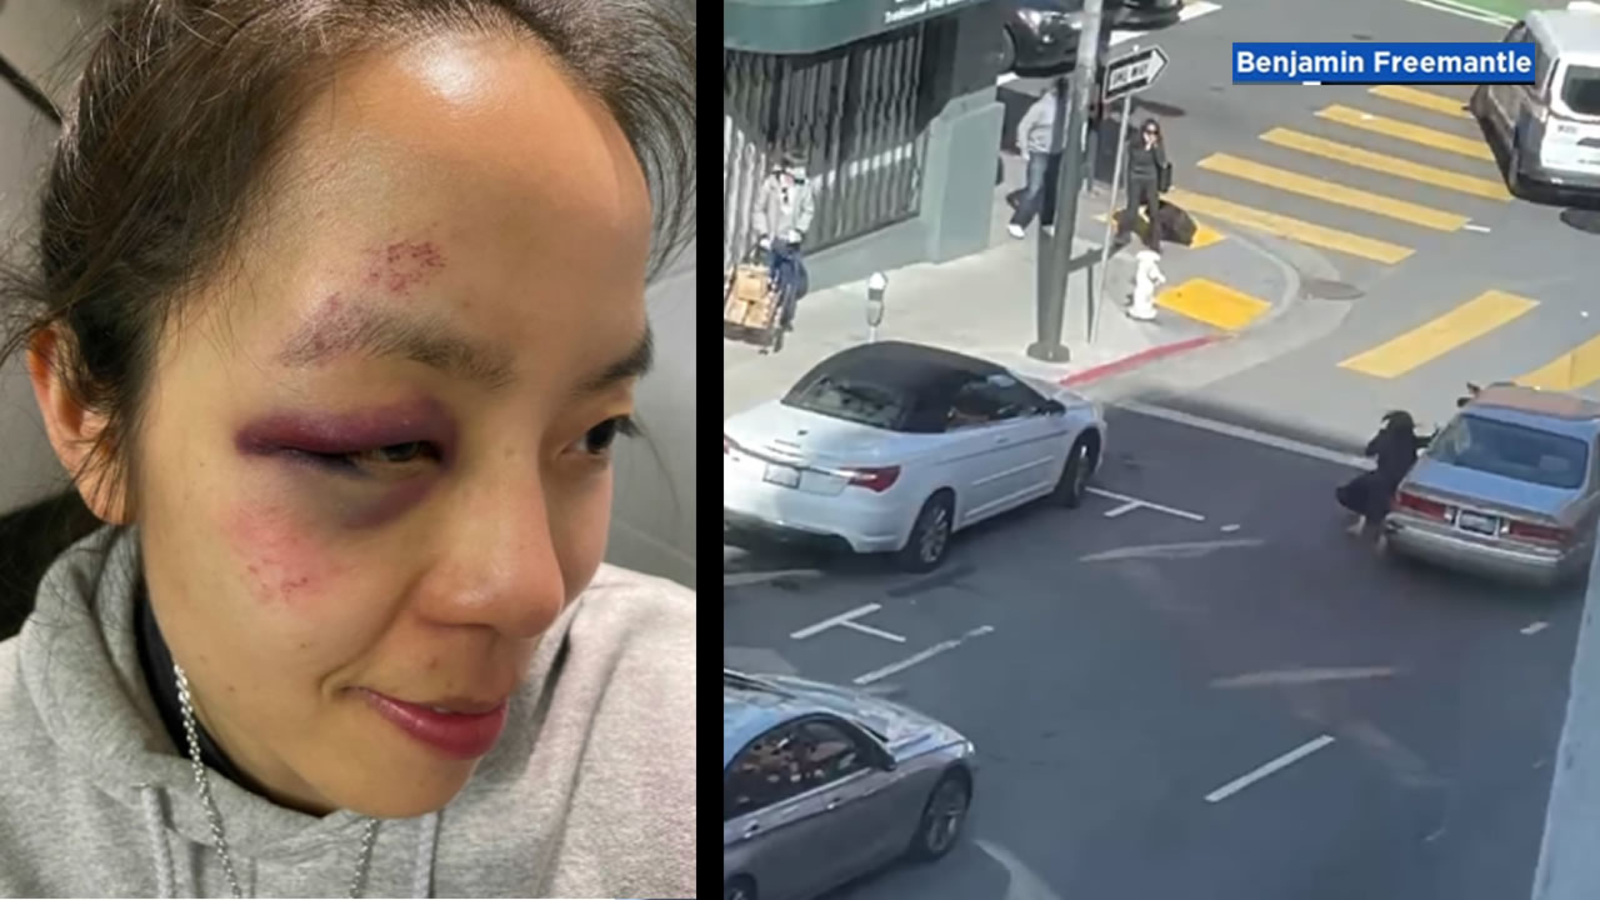 abc7.com: 'You are loved': Woman responds with sympathy for attackers after violent robbery in San Francisco